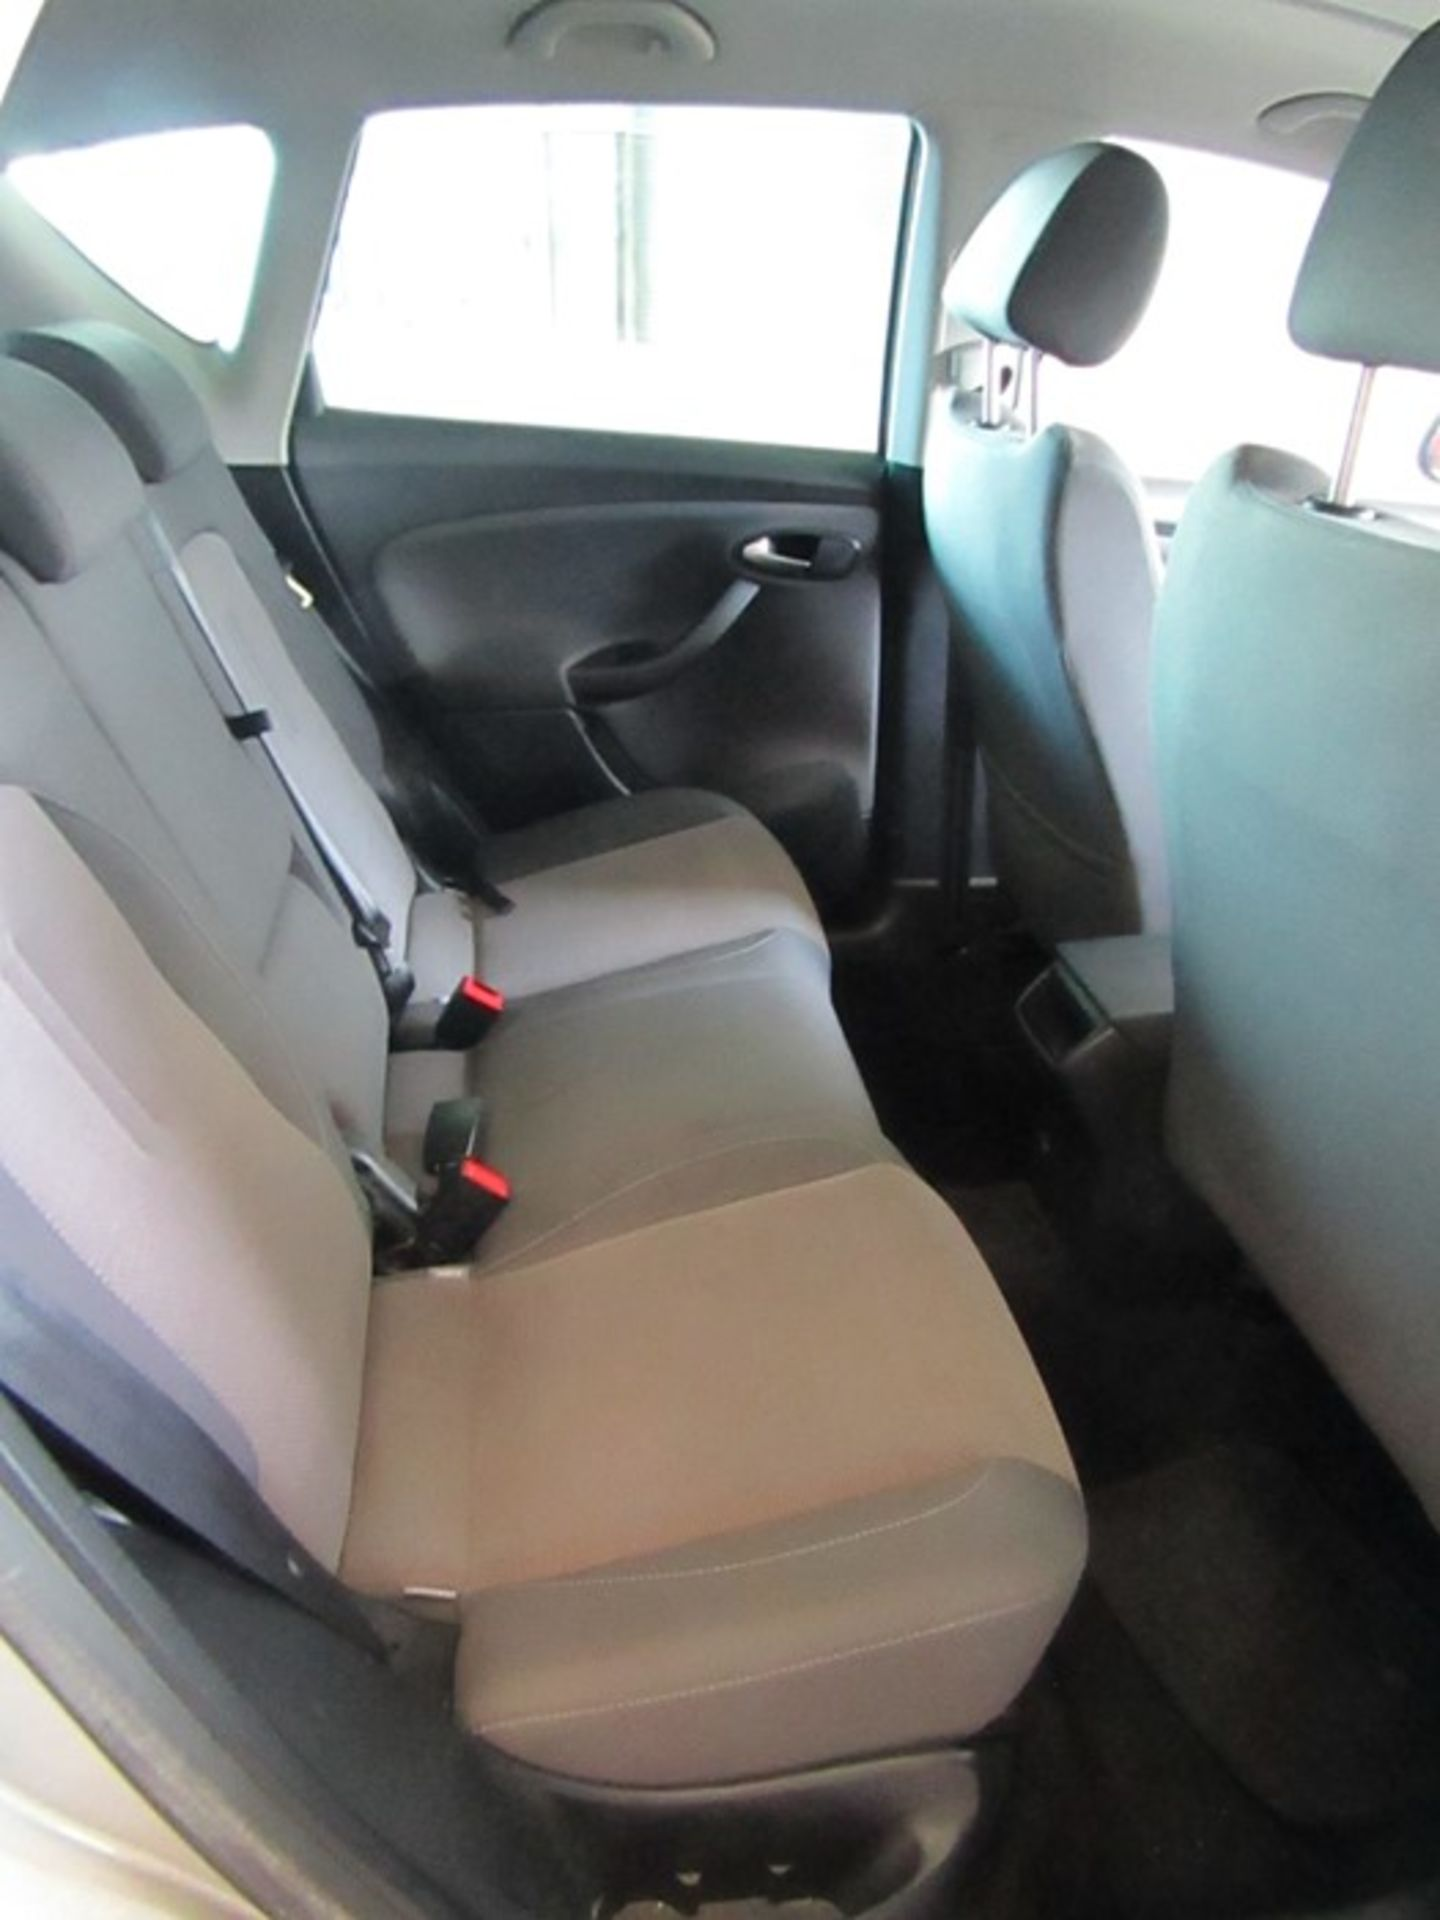 2011 Seat Althea SE CR TDI Auto, 1.6TDI, 47,678 miles (unchecked but appears to be inline with the - Image 10 of 17